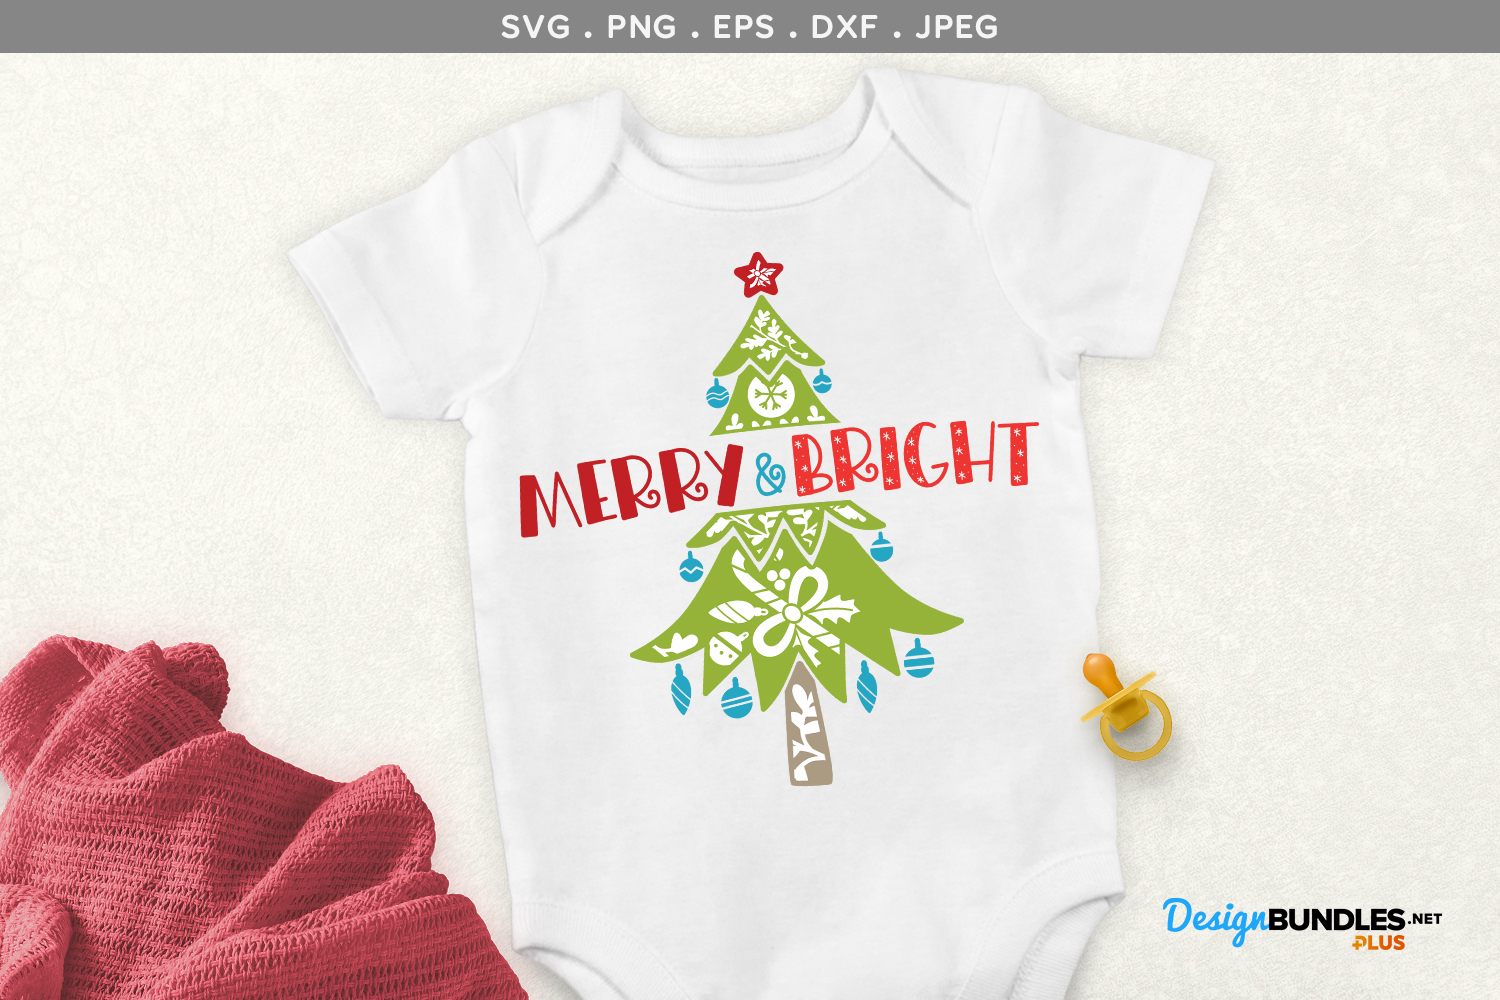 Merry & Bright - svg, printable example image 1